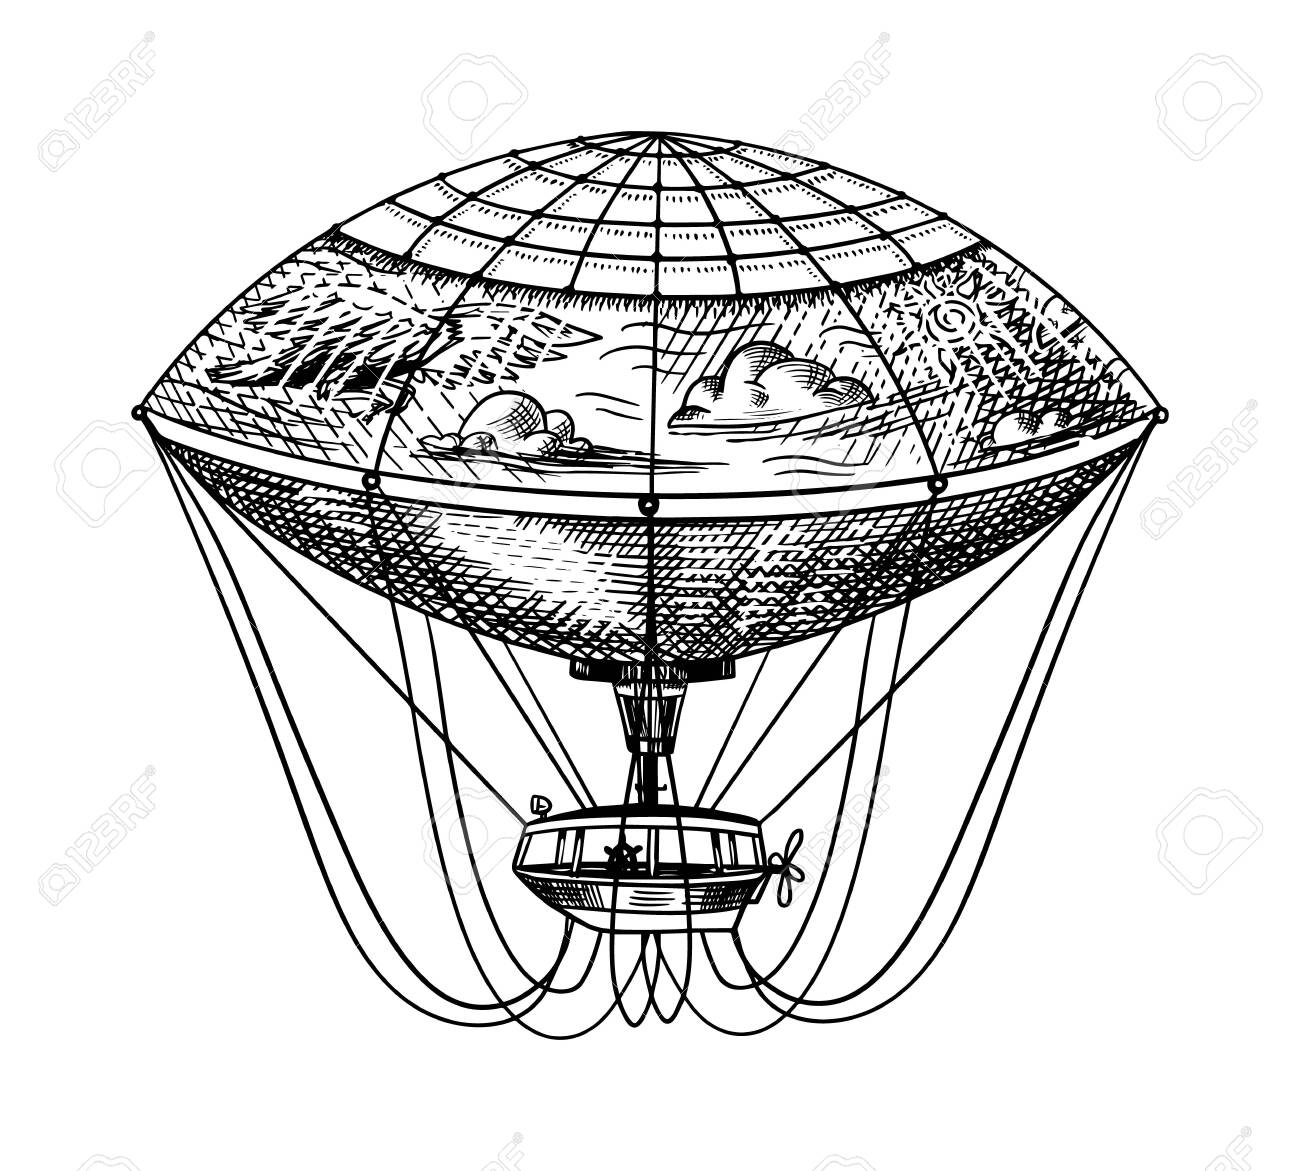 Vintage Hot Air Balloon. Vector retro flying airship with decorative elements. Template transport for Romantic Hand drawn Engraved sketch. - 125708775